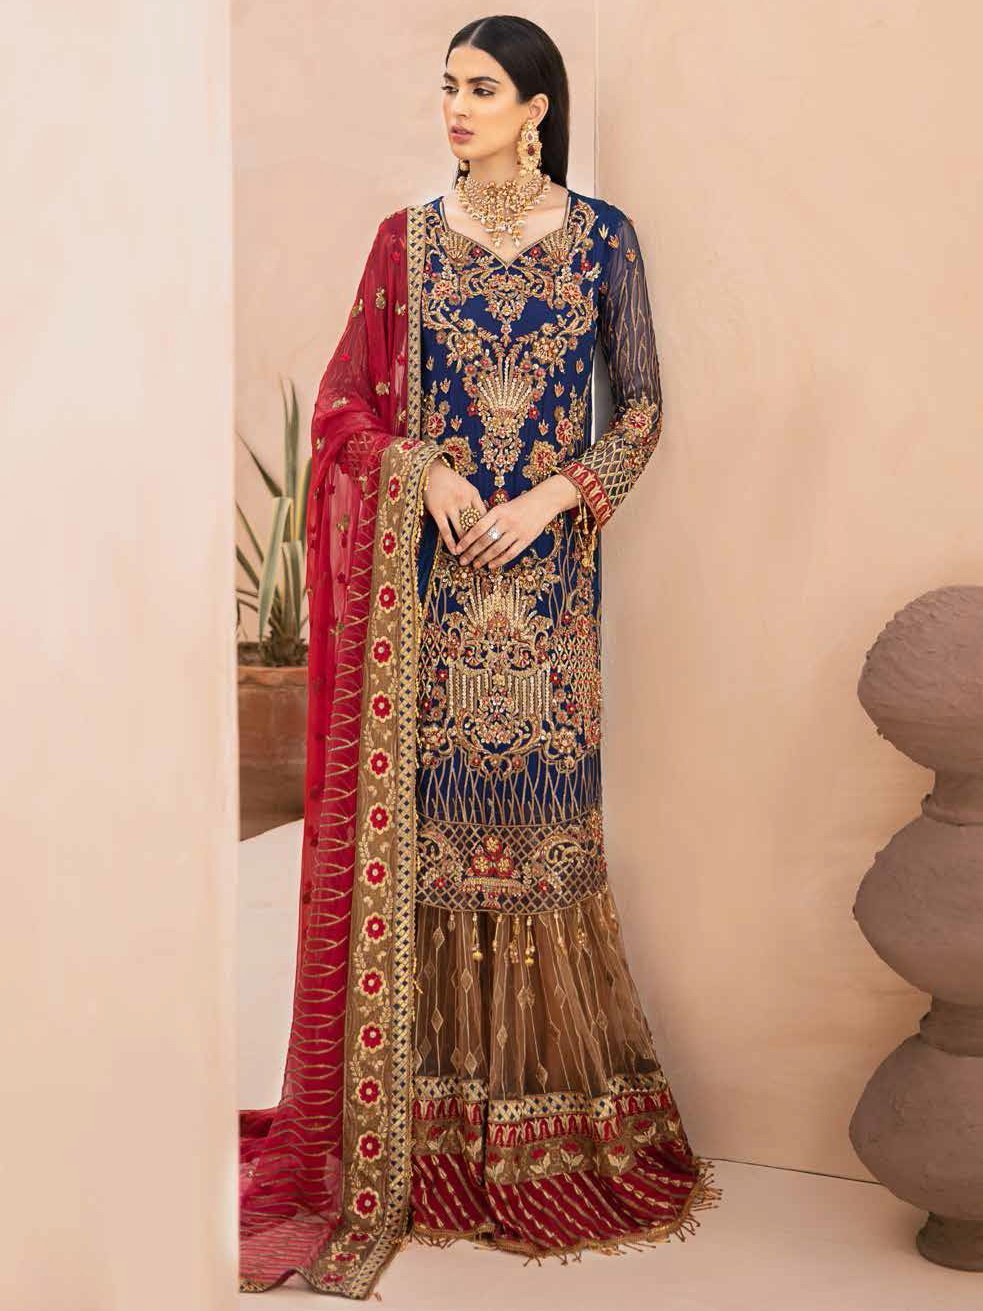 EMAAN ADEEL Elegant Bridal Collection Vol-3 Embroidered 3PC Suit EA-306 - FaisalFabrics.pk